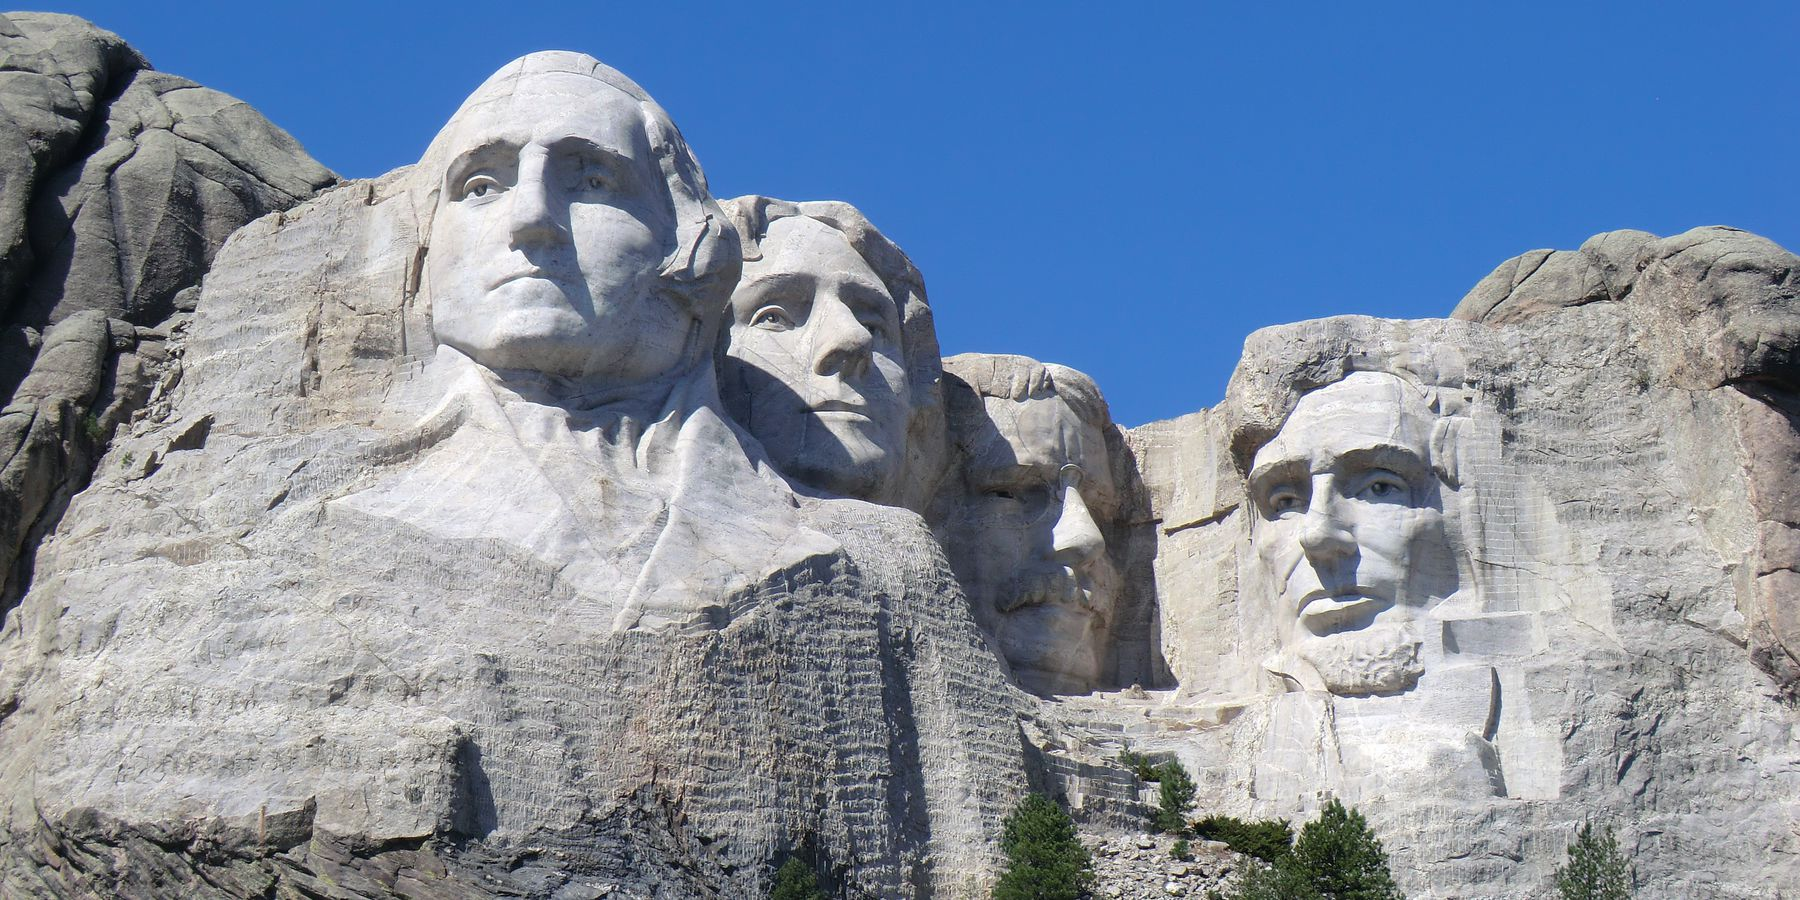 Mount Rushmore National Memorial - South Dakota - Amerika - Doets Reizen